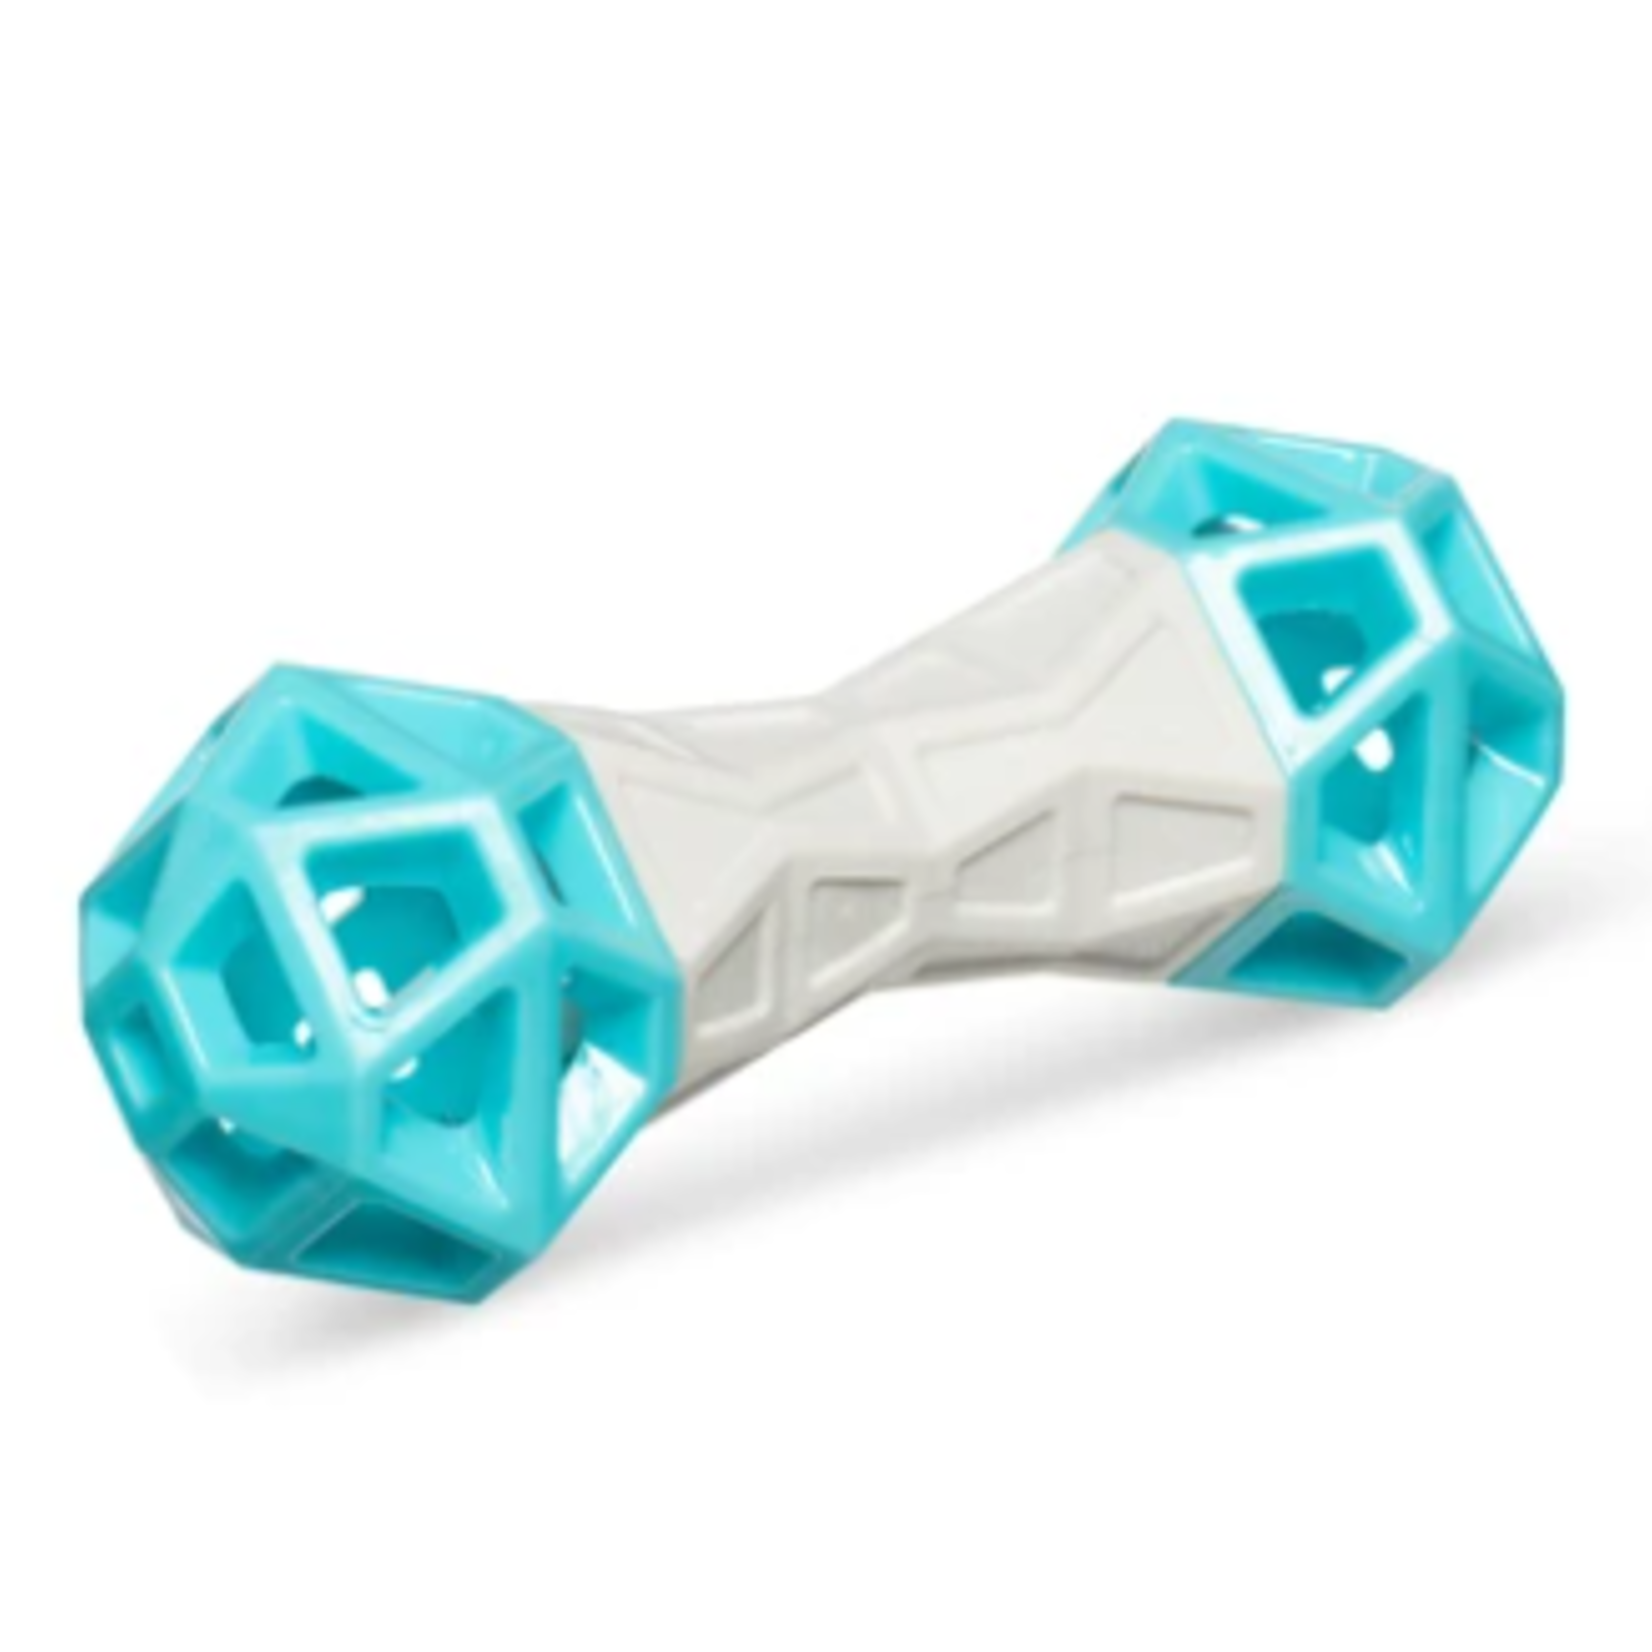 Messy Mutts Totally Pooched-Bone, 7 in-teal/grey